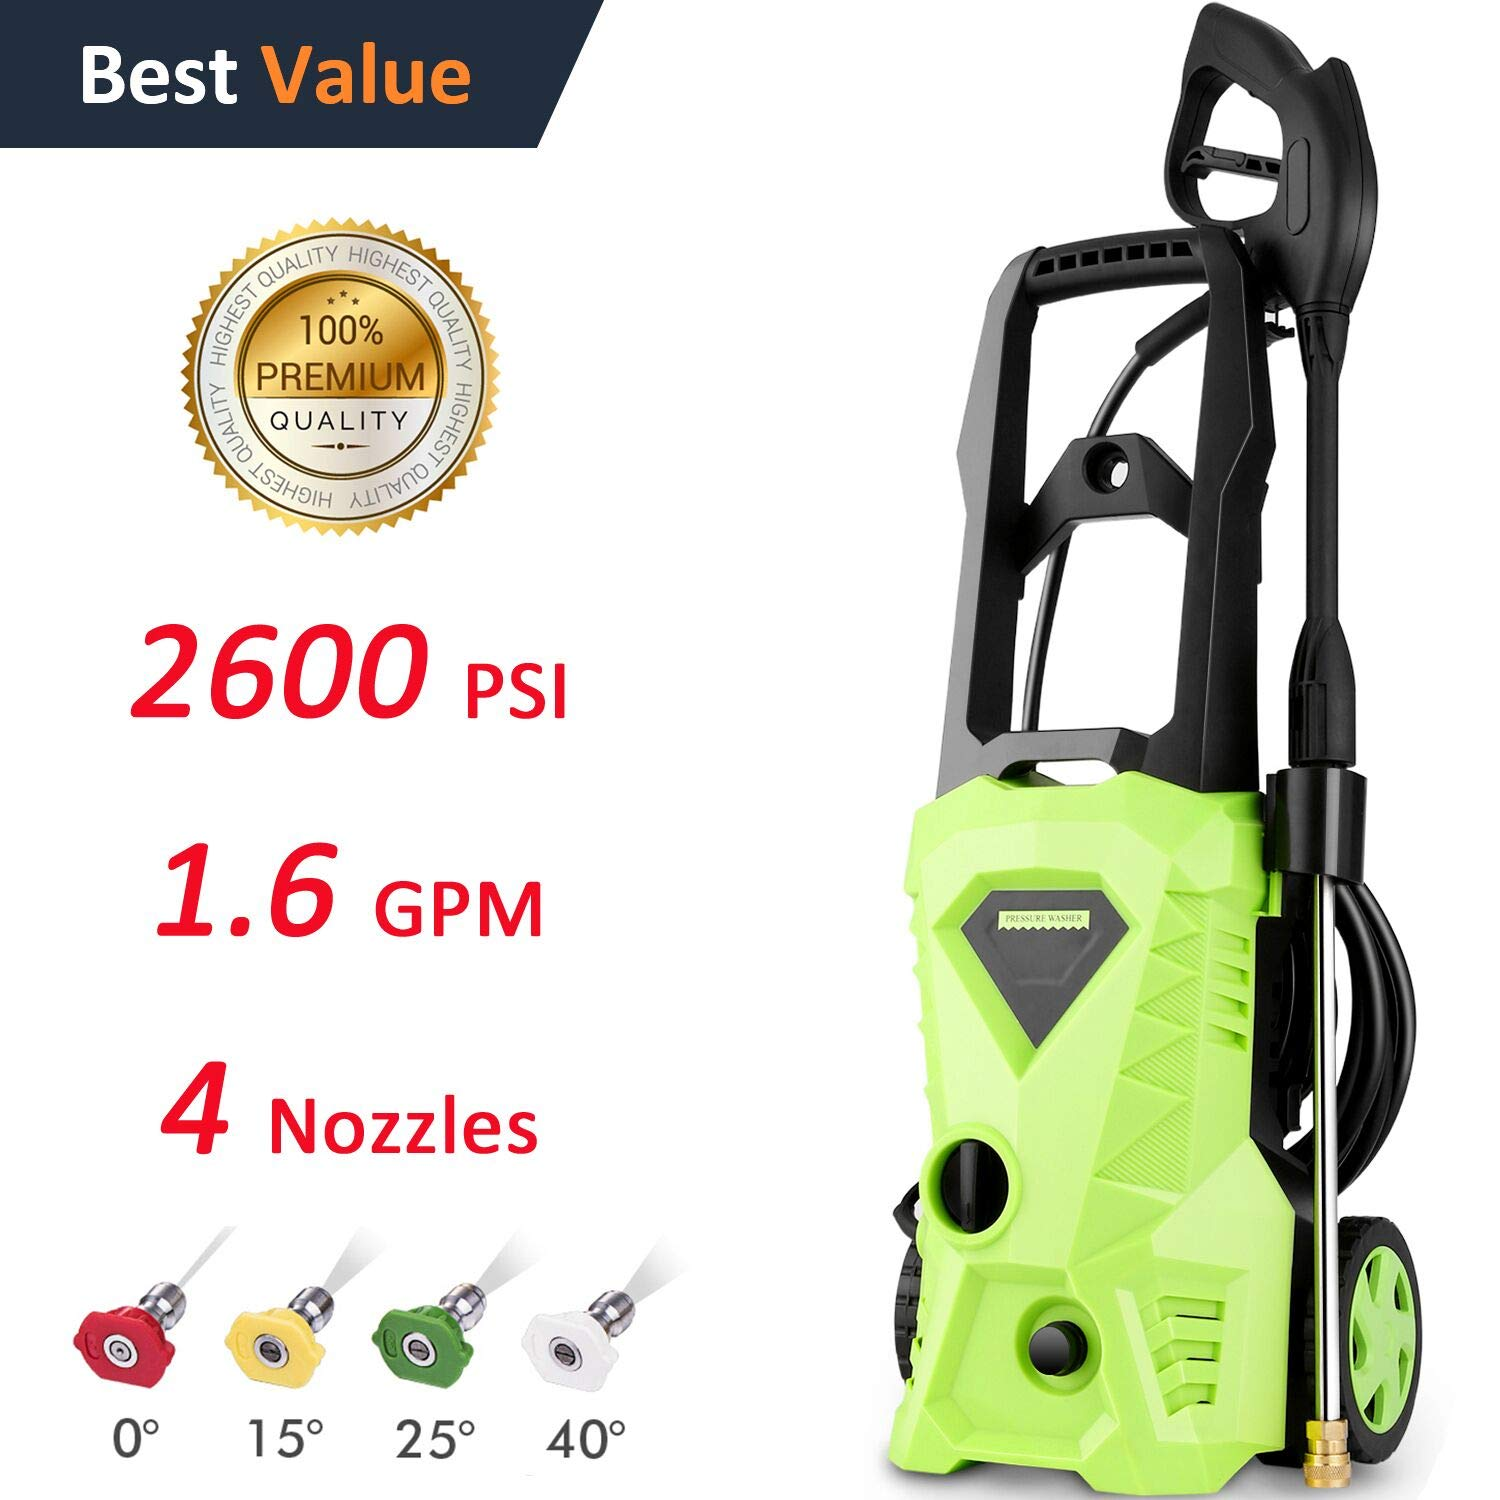 Flagup 2600 PSI Max Power Pressure Washer, 1600W Electric Pressure Washer, High Pressure Power Hose Gun Wand Built in Soap Dispenser + (4) Nozzle Adapter,1.60 GPM